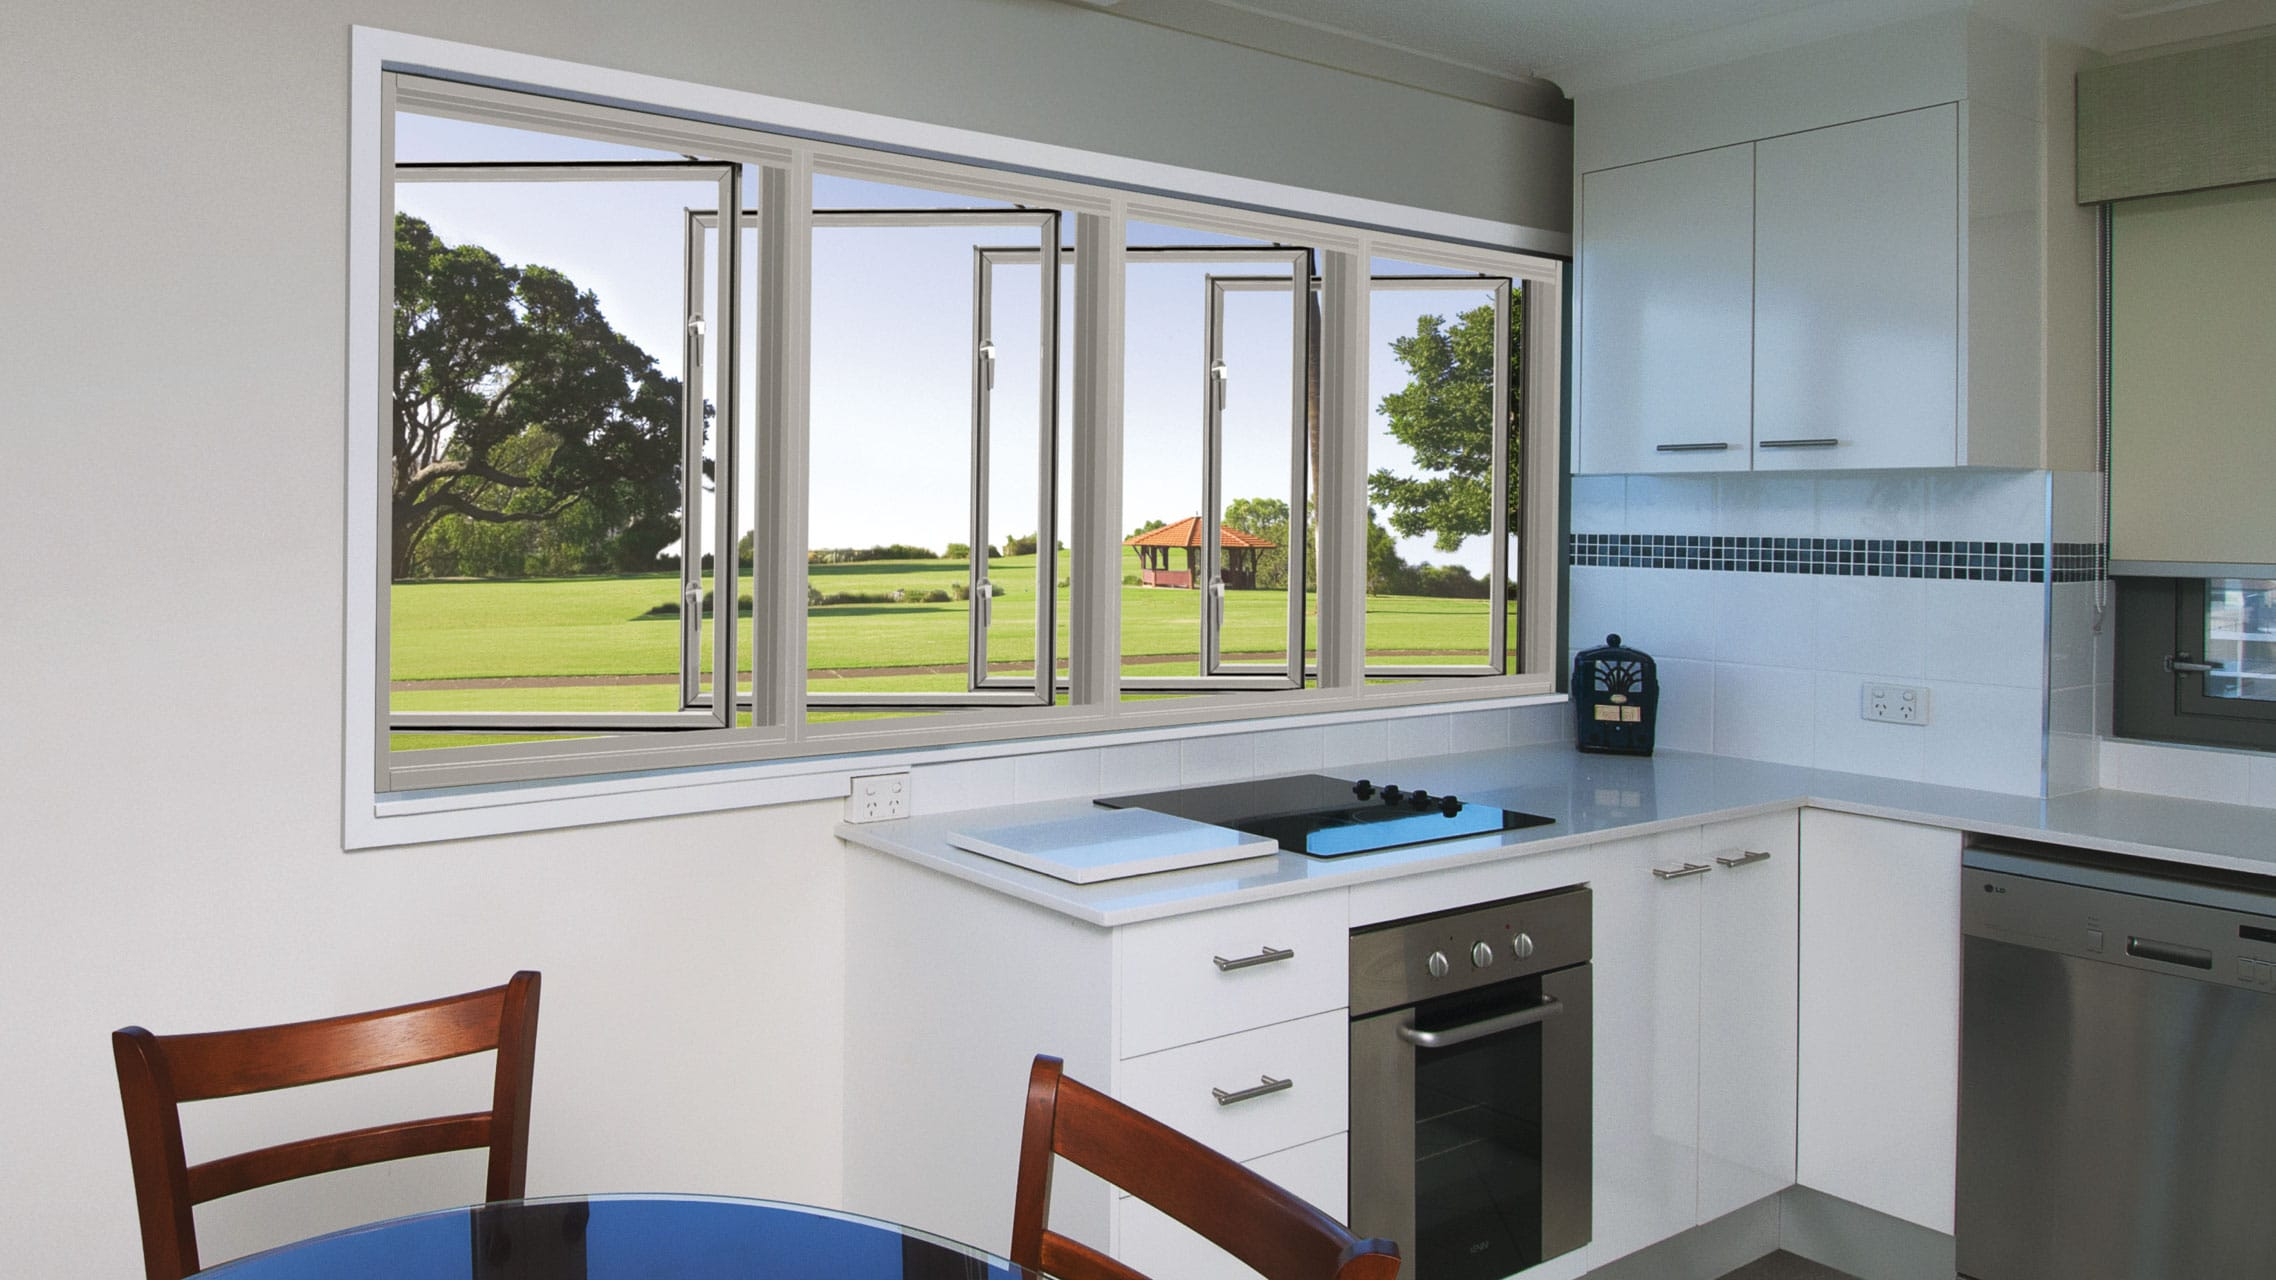 White Aluminium Casement Windows above a kitchen bench